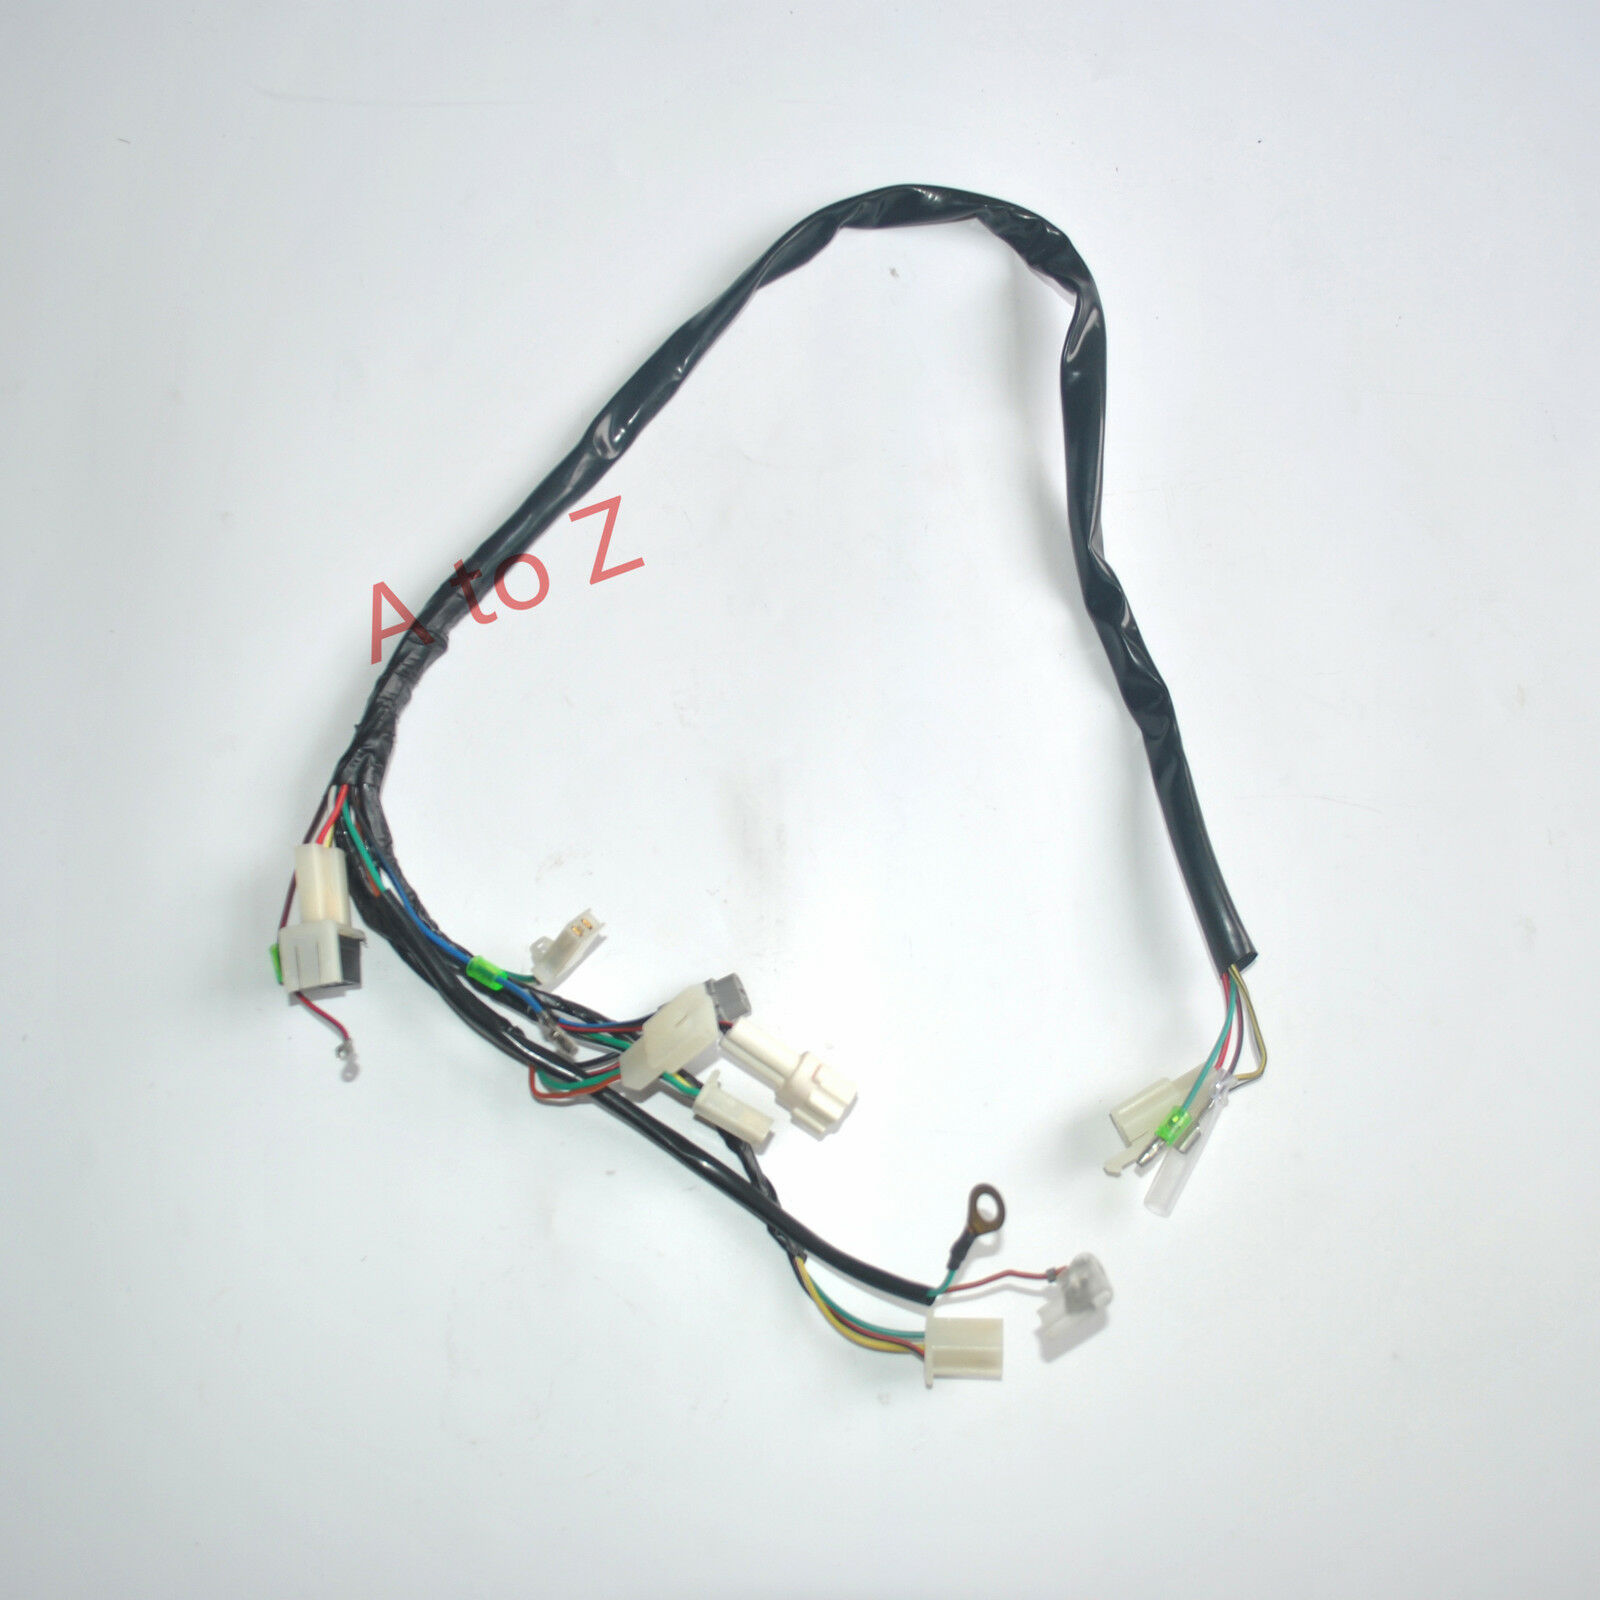 Wire Wiring Harness Assembly For Yamaha Pw50 Pw 50 Peewee Pit Bike 1 Of 4only Available